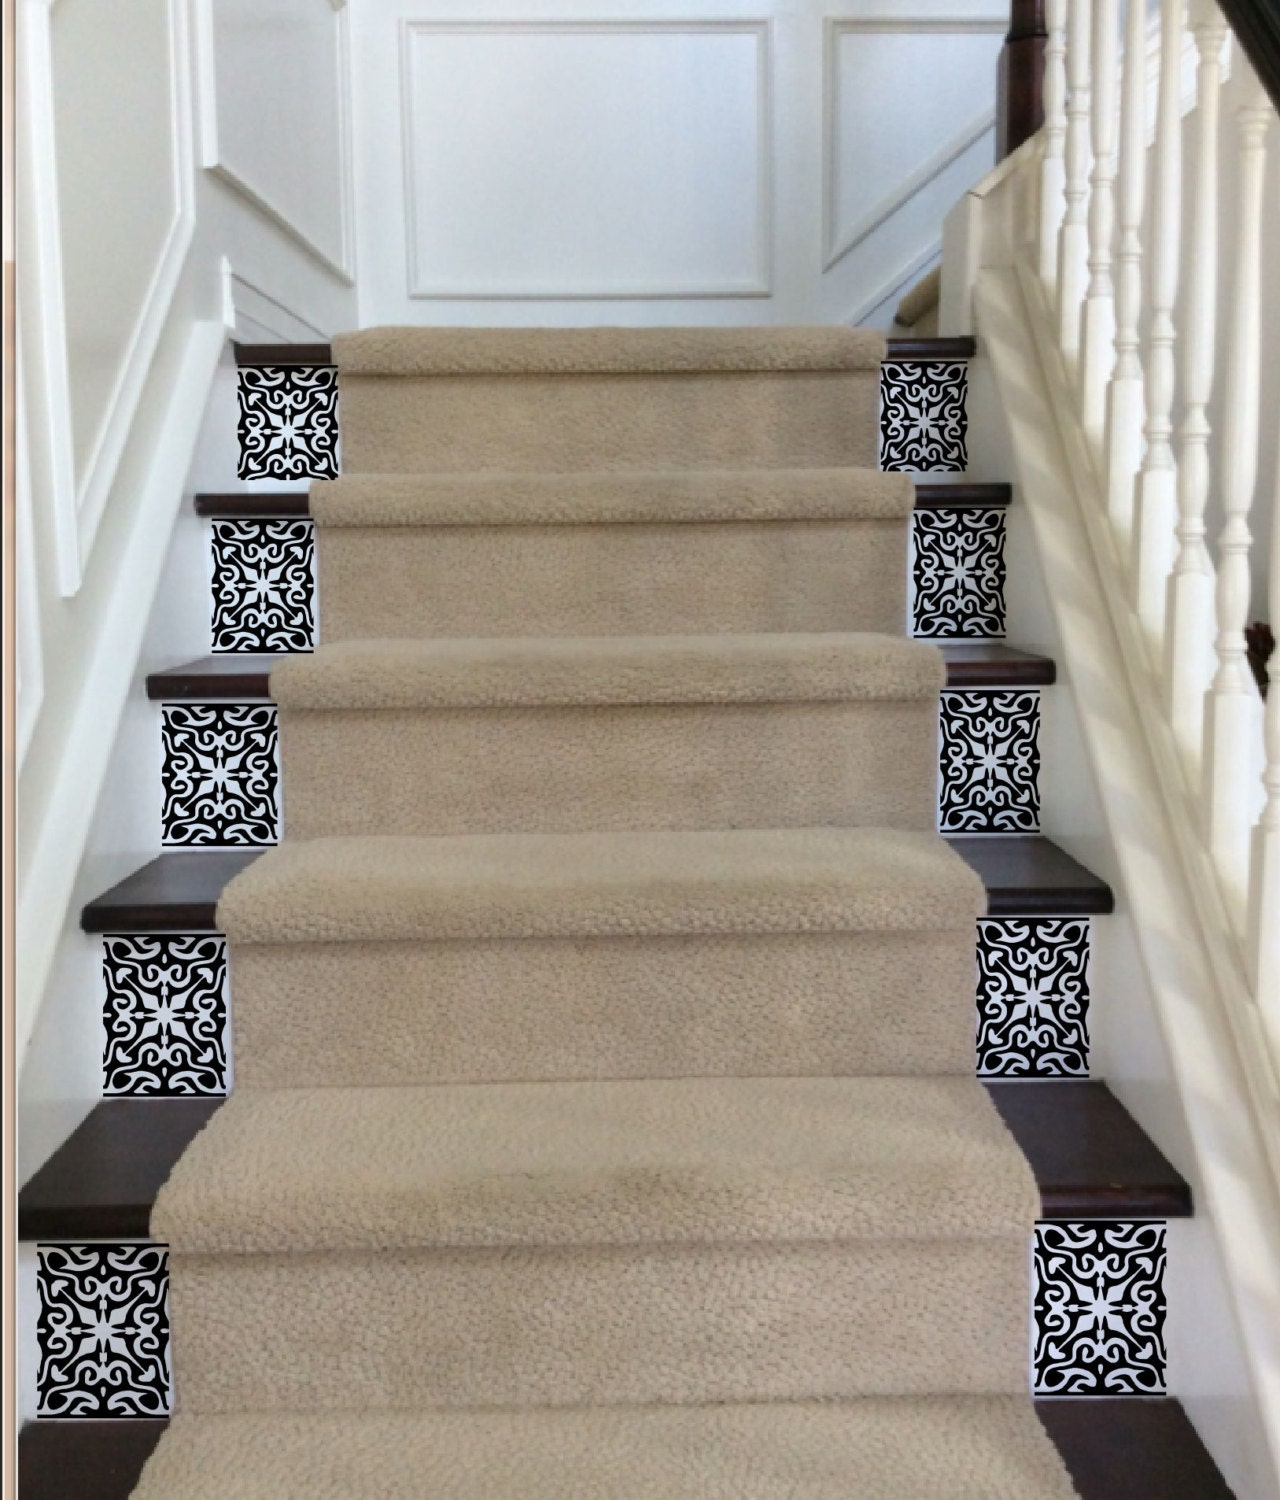 Ornate vinyl tile decals for carpeted stairs decals for - Stickers pour marche d escalier ...